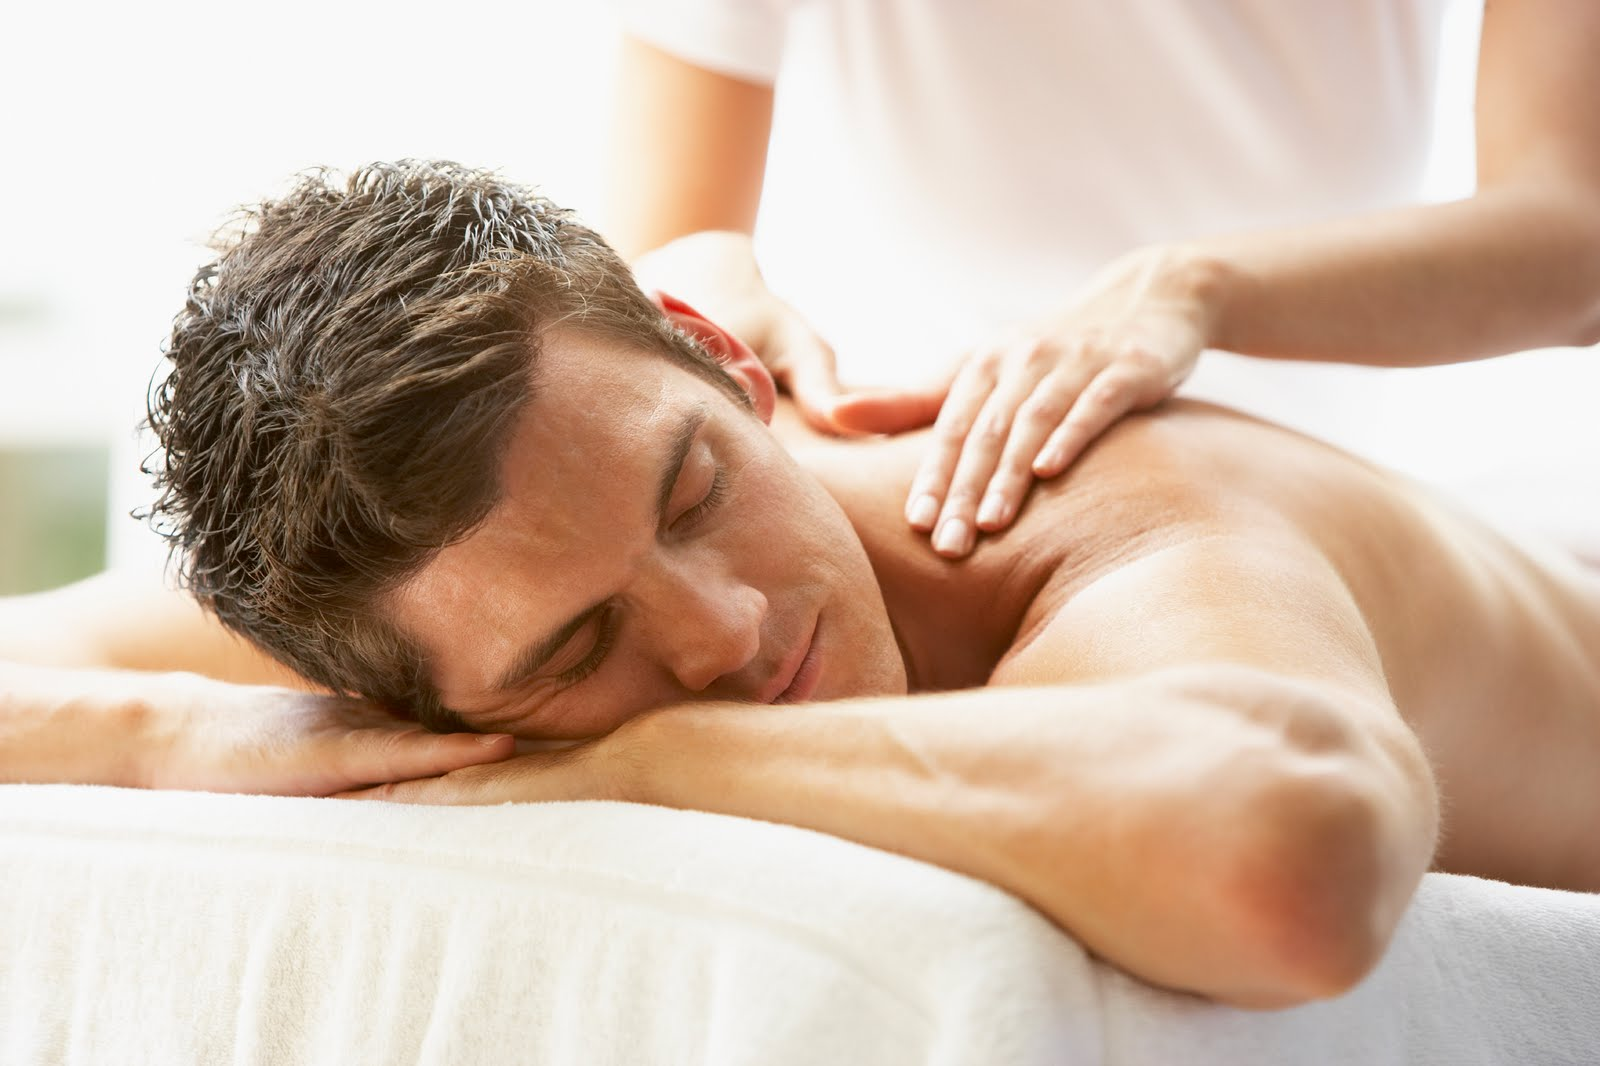 massage image 3